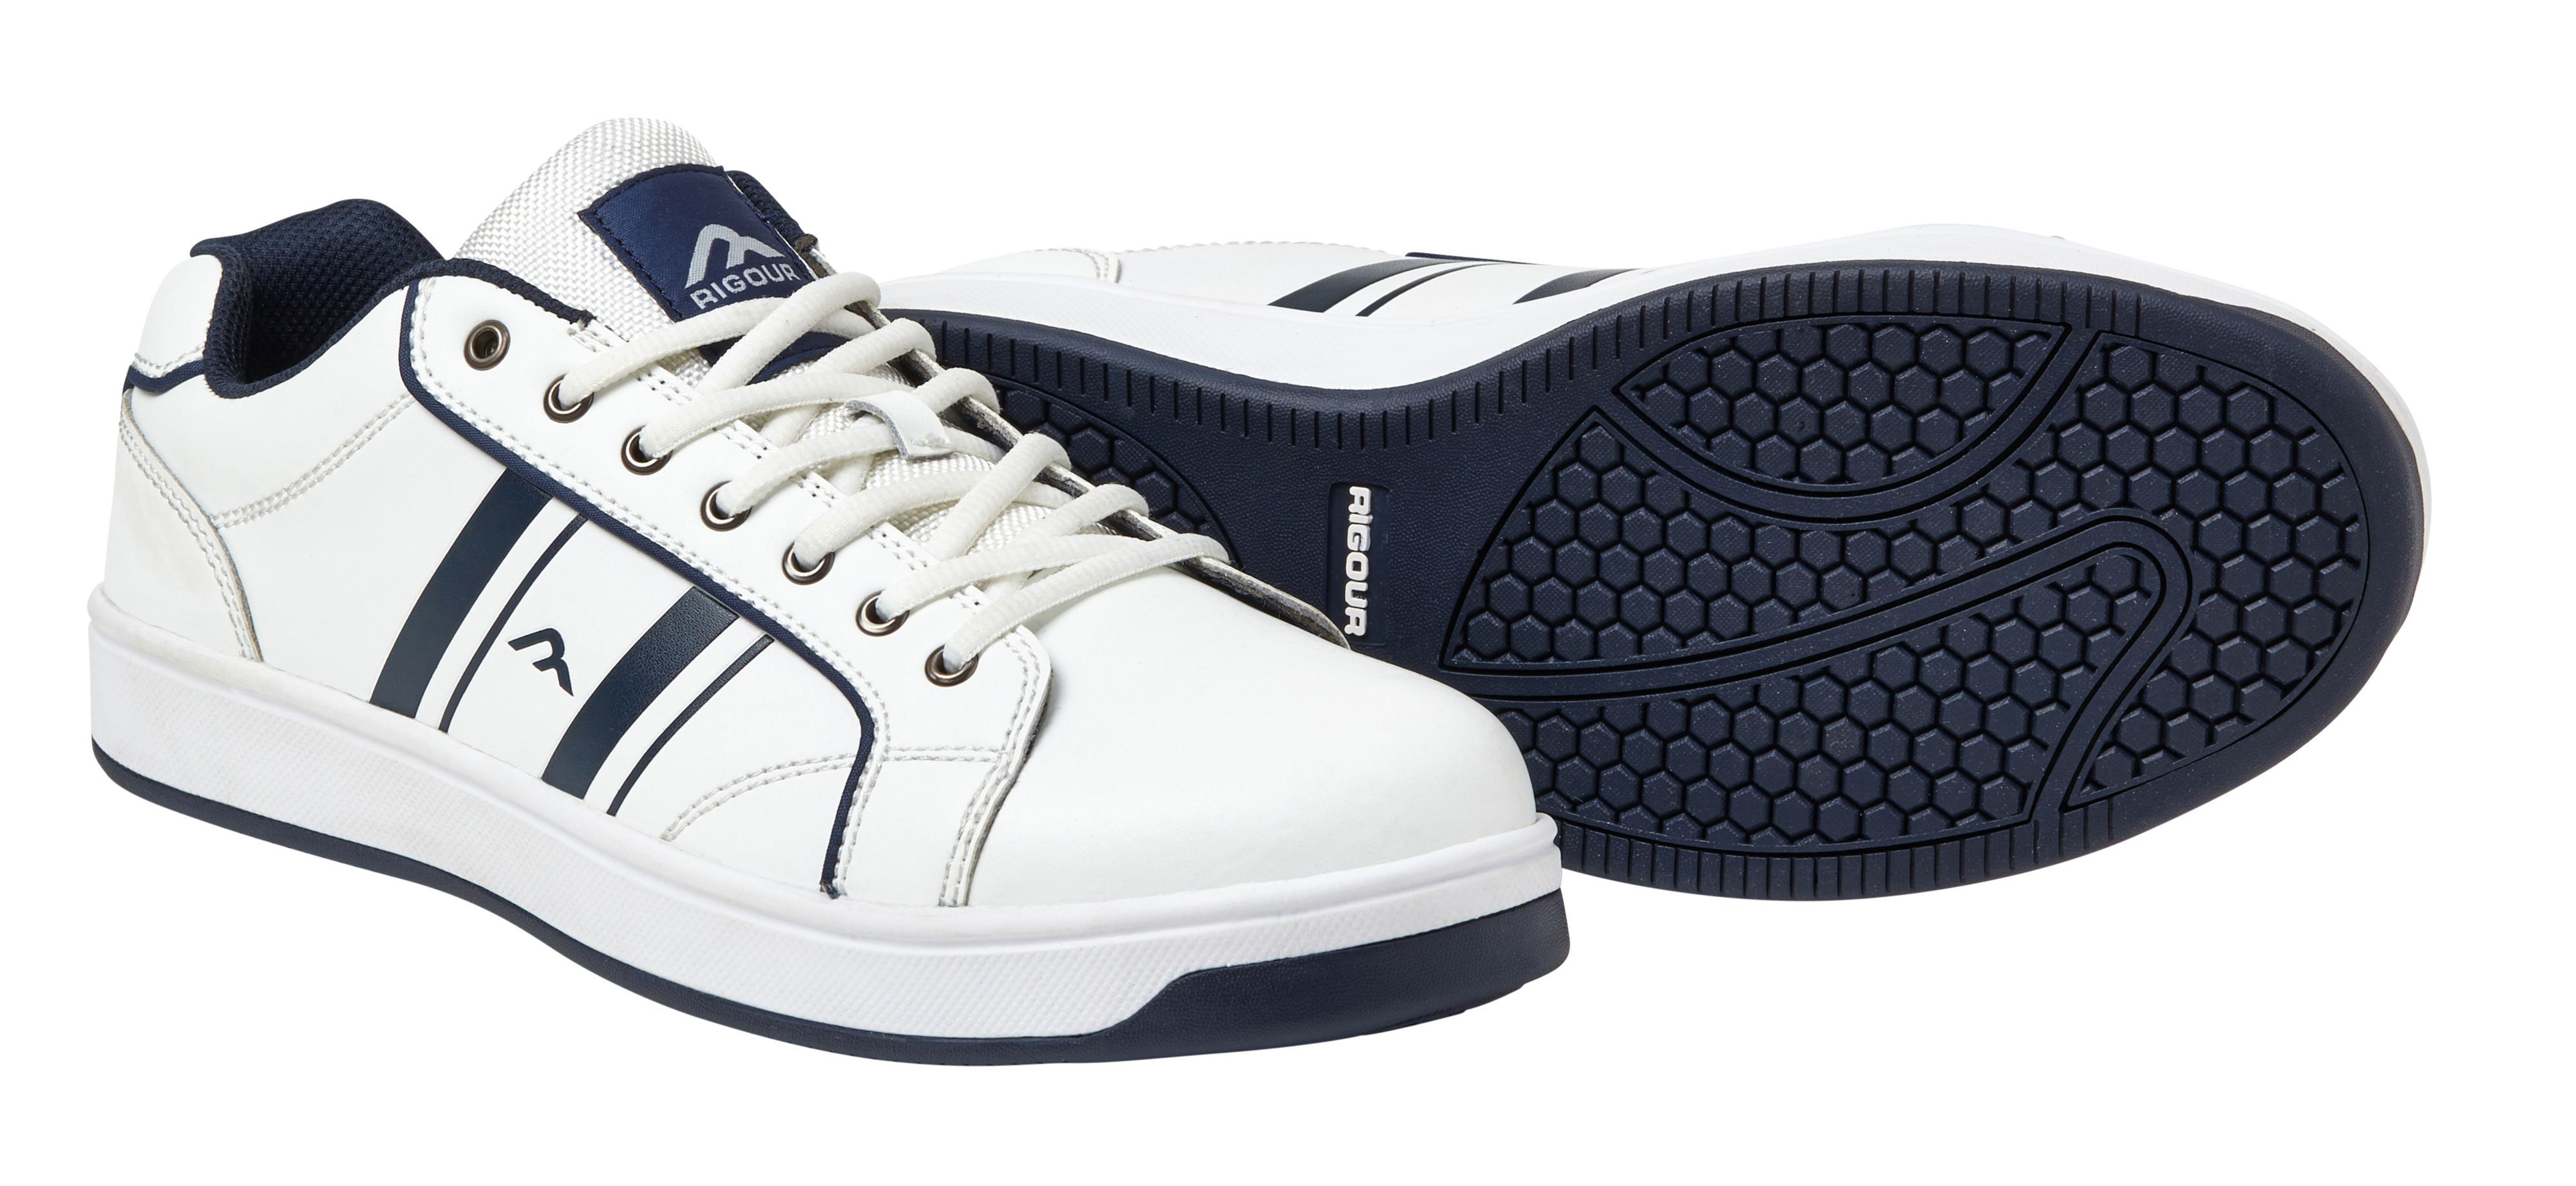 5ff3521c471 Rigour Navy & white Safety trainers, Size 9 | Departments | DIY at B&Q